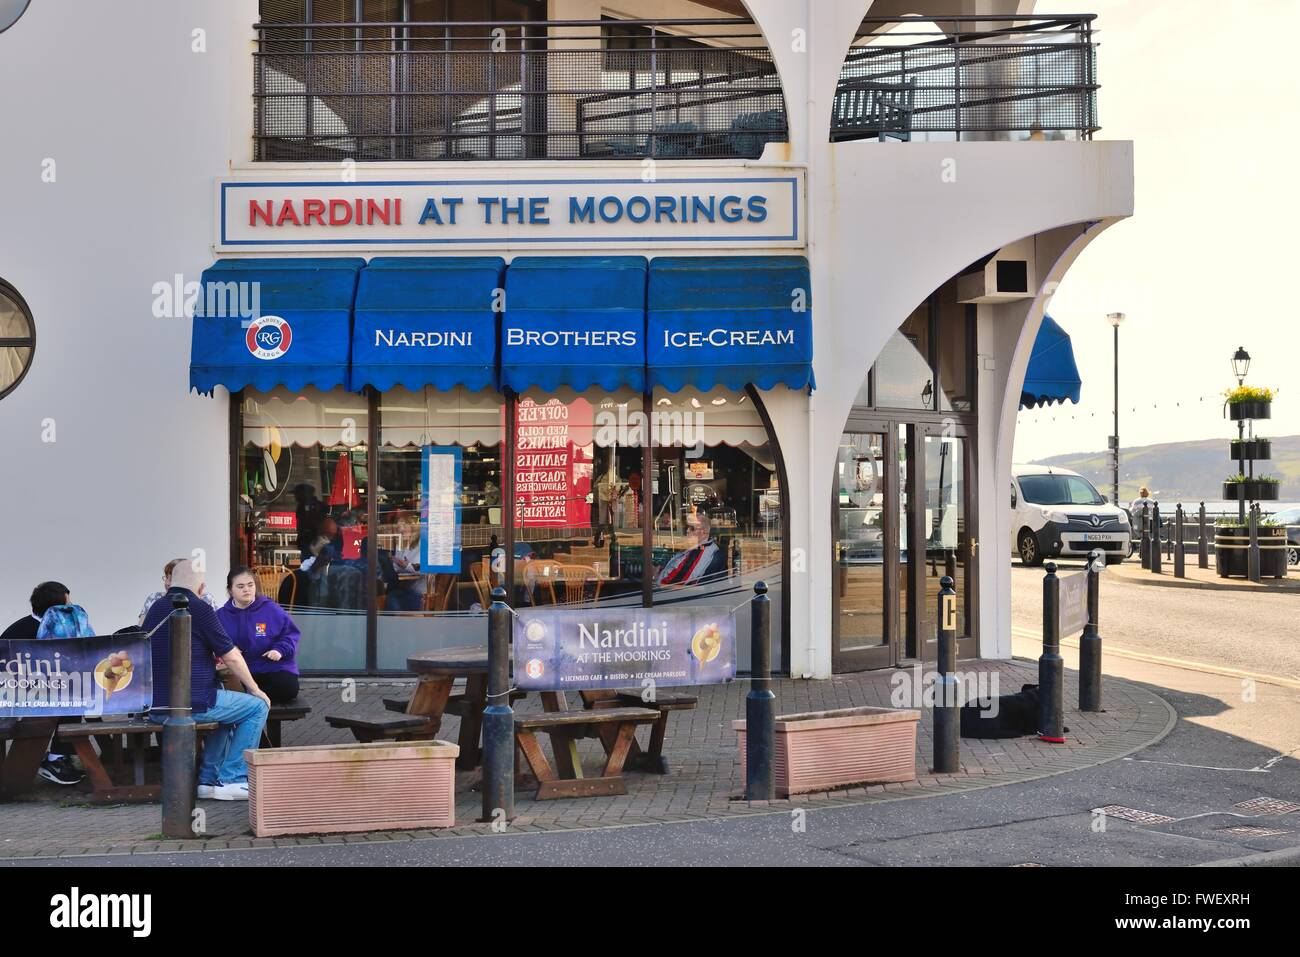 Nardini at the moorings cafe restaurant in Largs, Scotland, UK - Stock Image